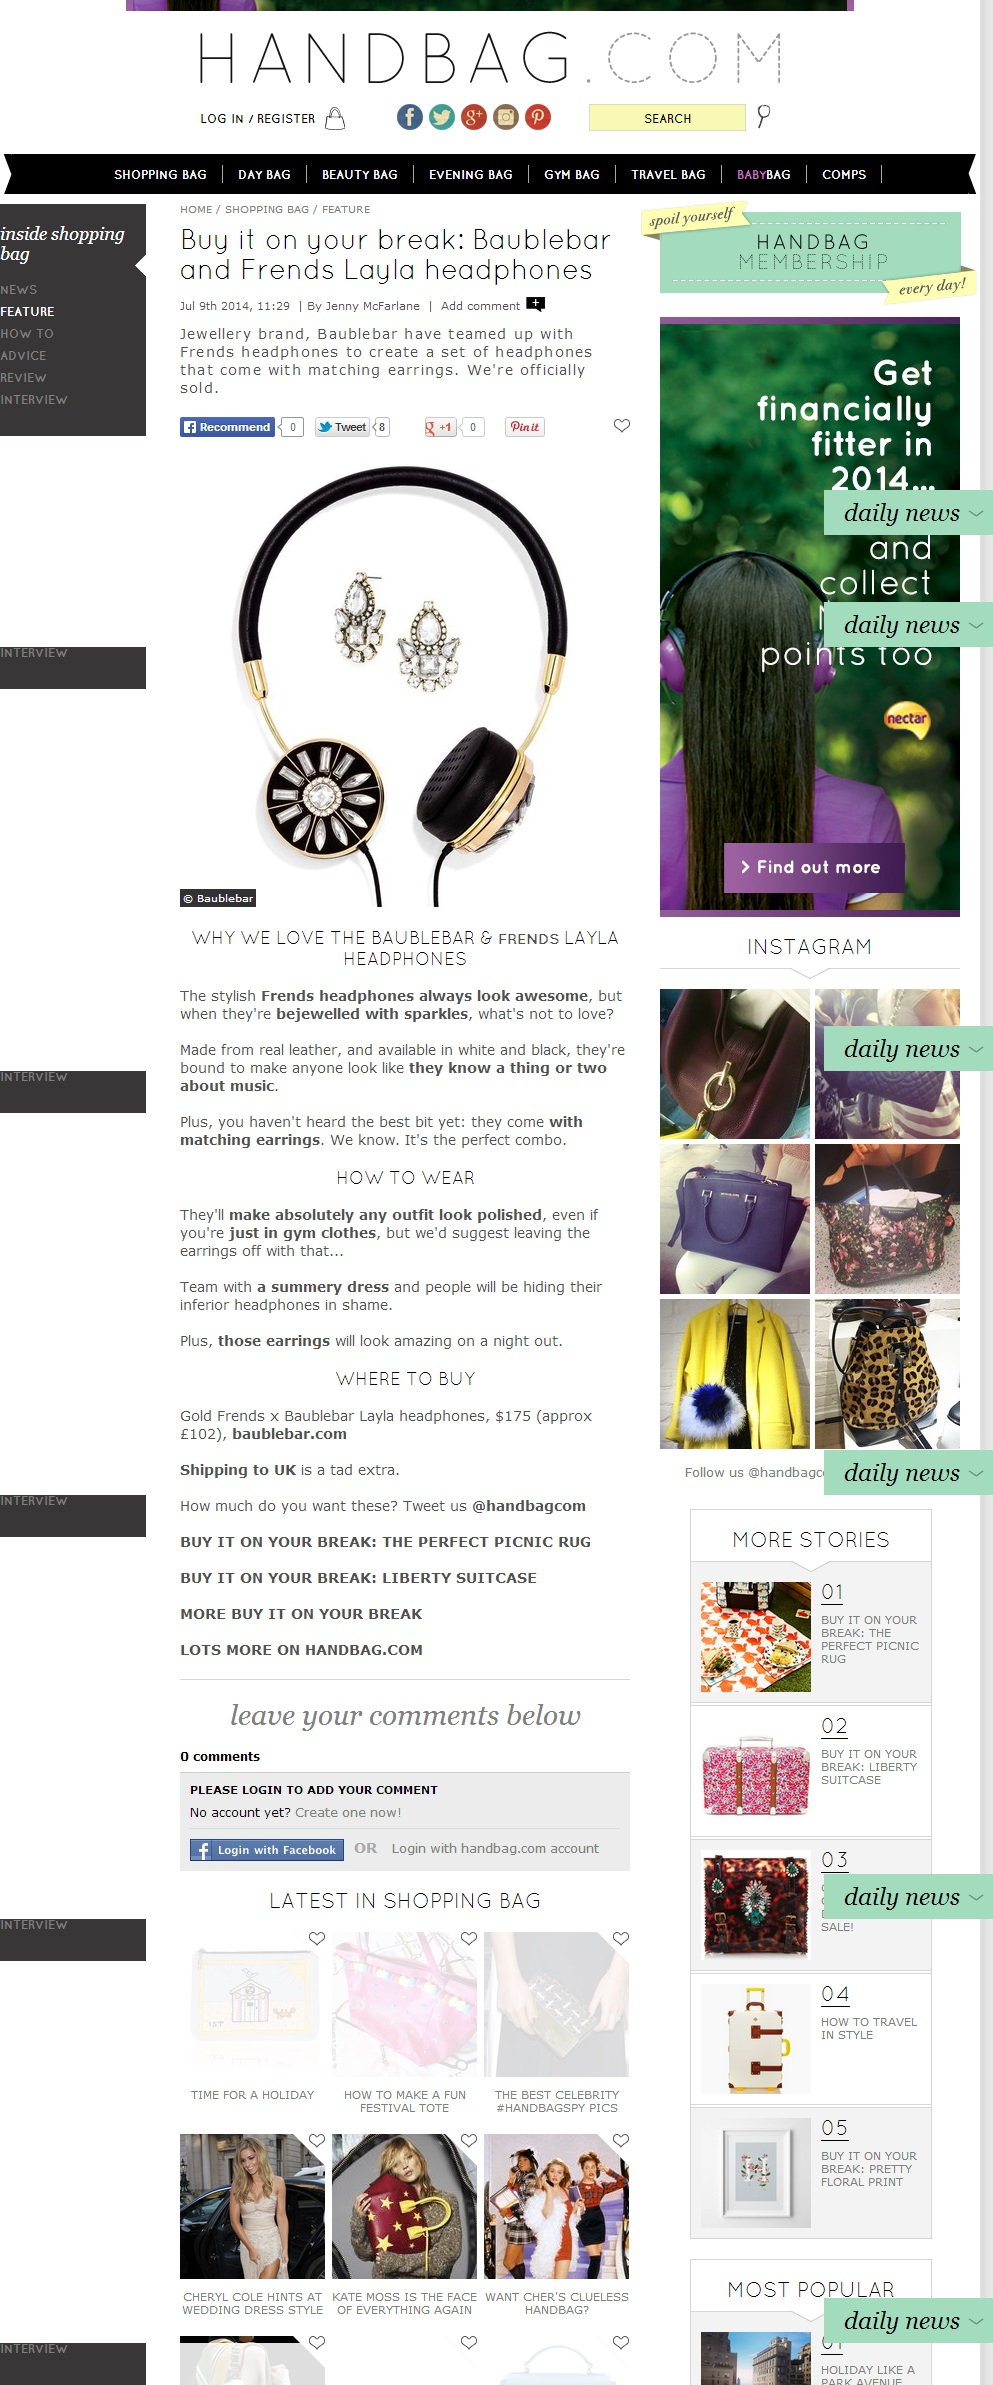 screencapture-www-handbag-com-shopping-bag-feature-a583055-buy-it-on-your-break-baublebar-and-frends-layla-headphones-html